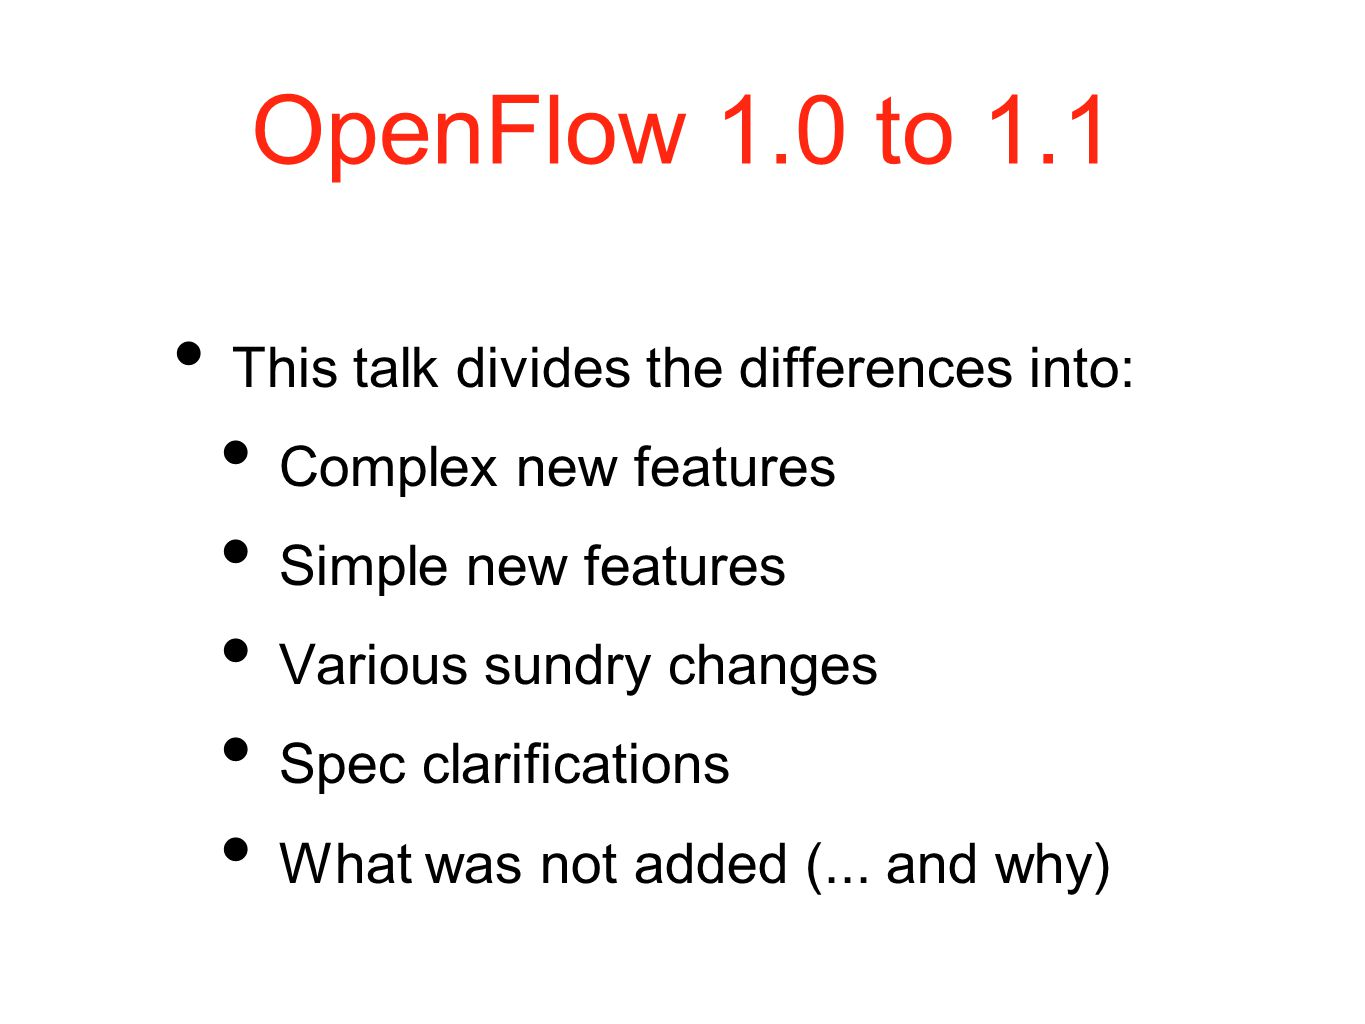 OpenFlow 1.0 to 1.1 This talk divides the differences into: Complex new features Simple new features Various sundry changes Spec clarifications What was not added (...